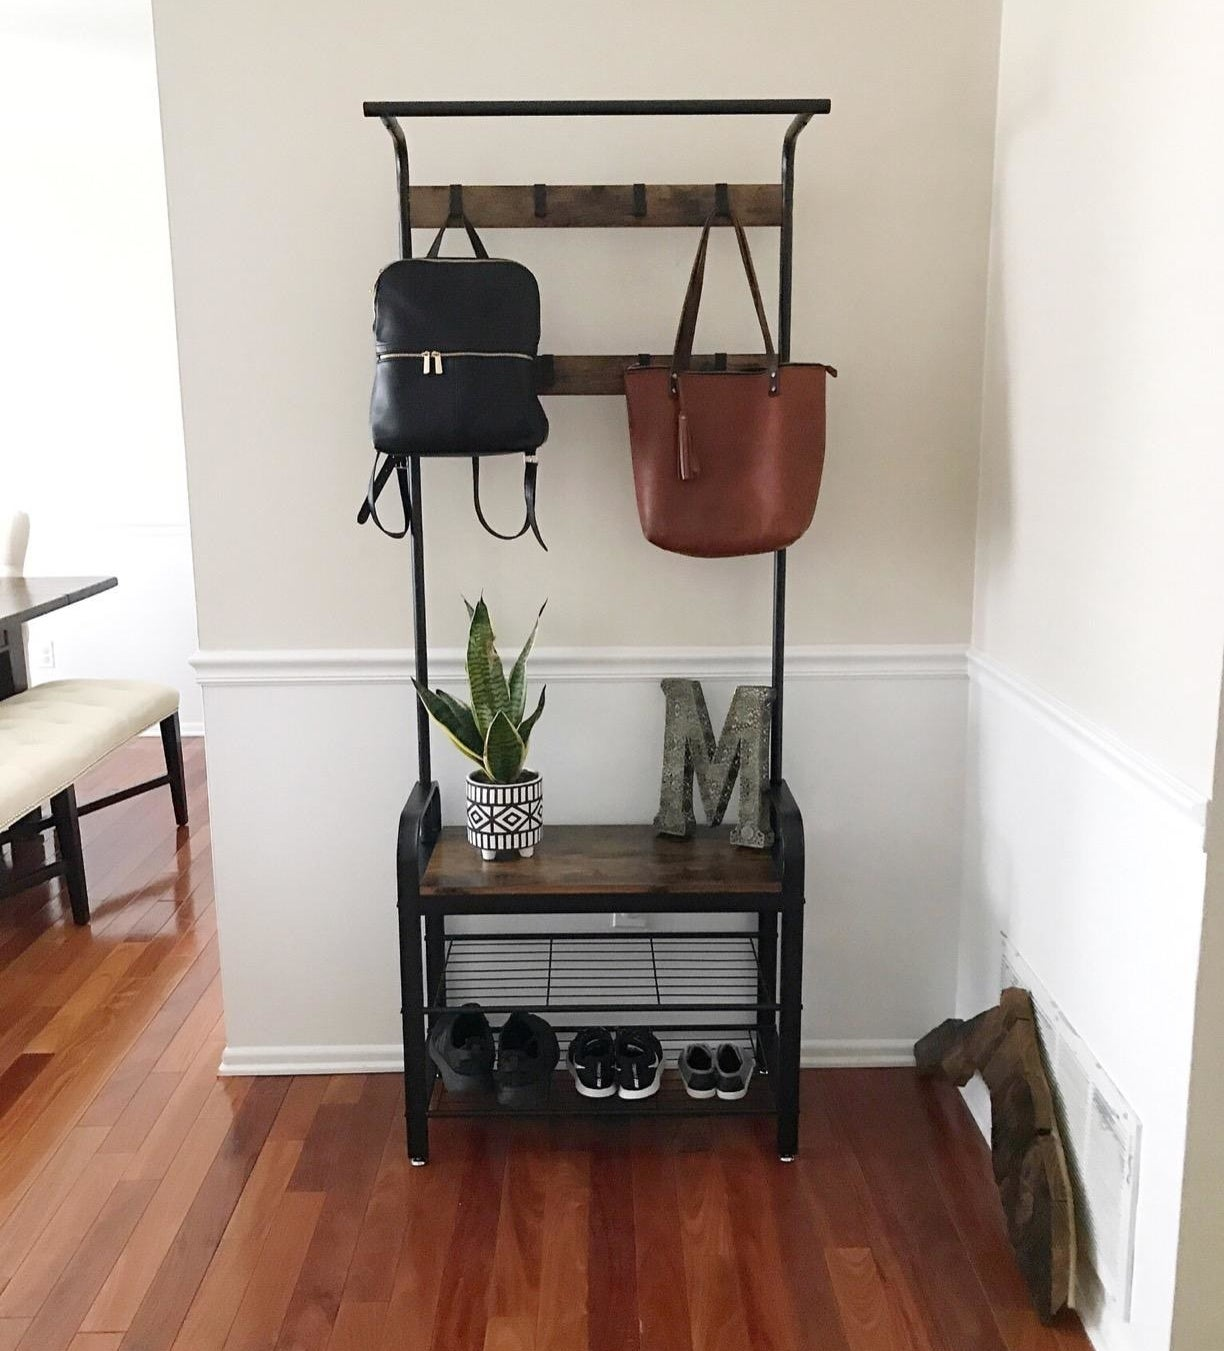 Reviewer image showing the rack in use, with coat hooks on top and a shoe rack on the bottom